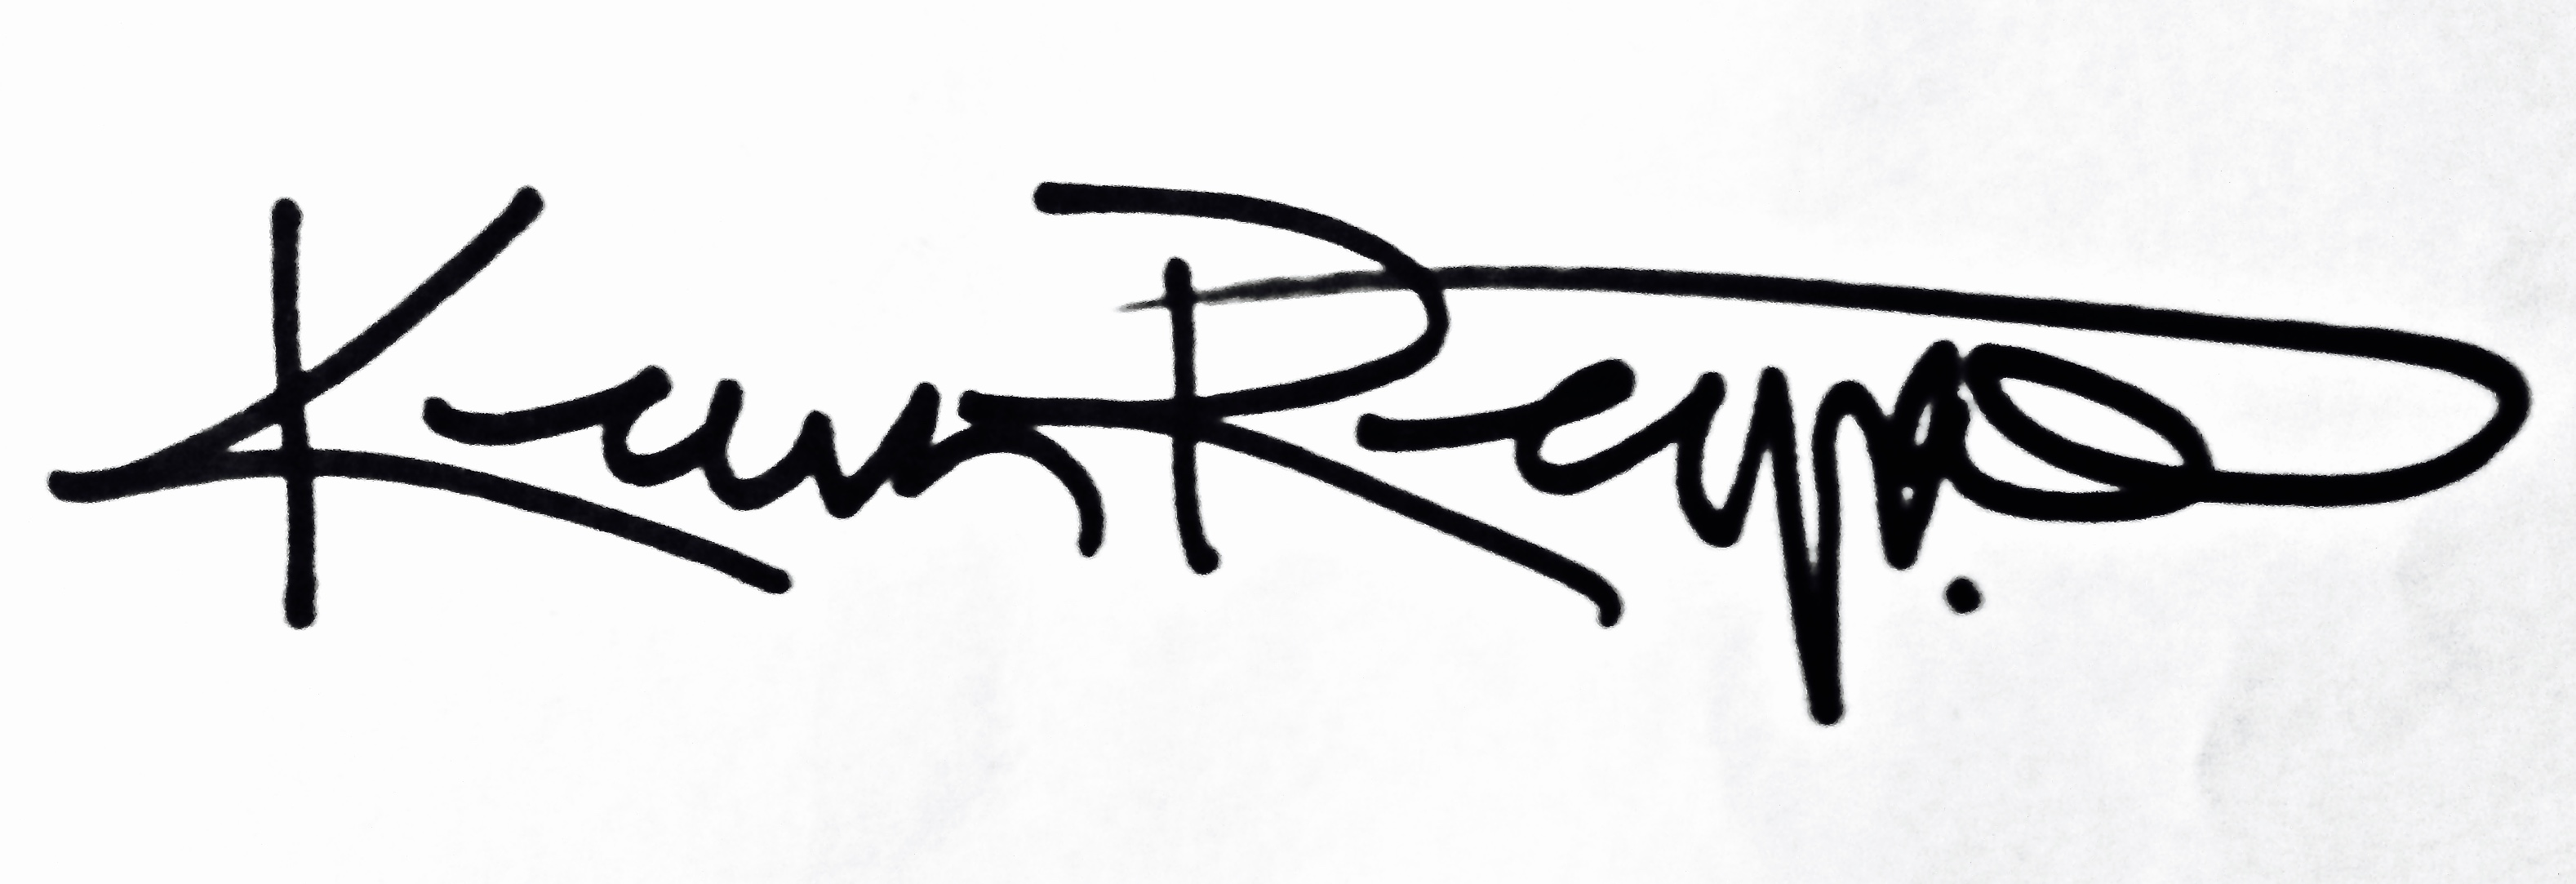 keven reynolds Signature